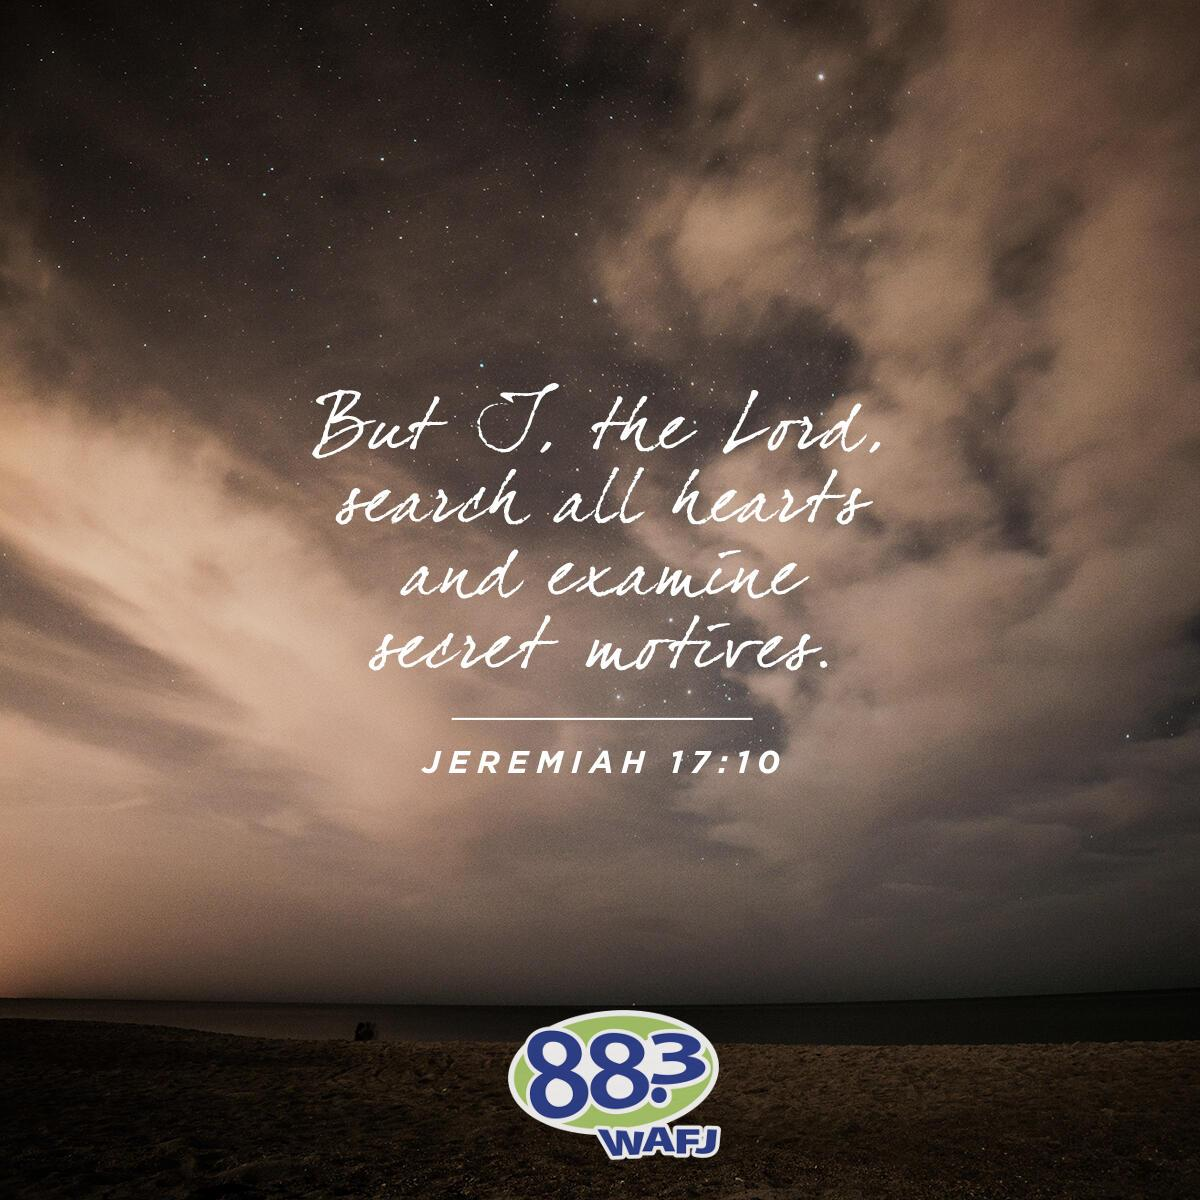 Jeremiah 17:10 - Verse of the Day